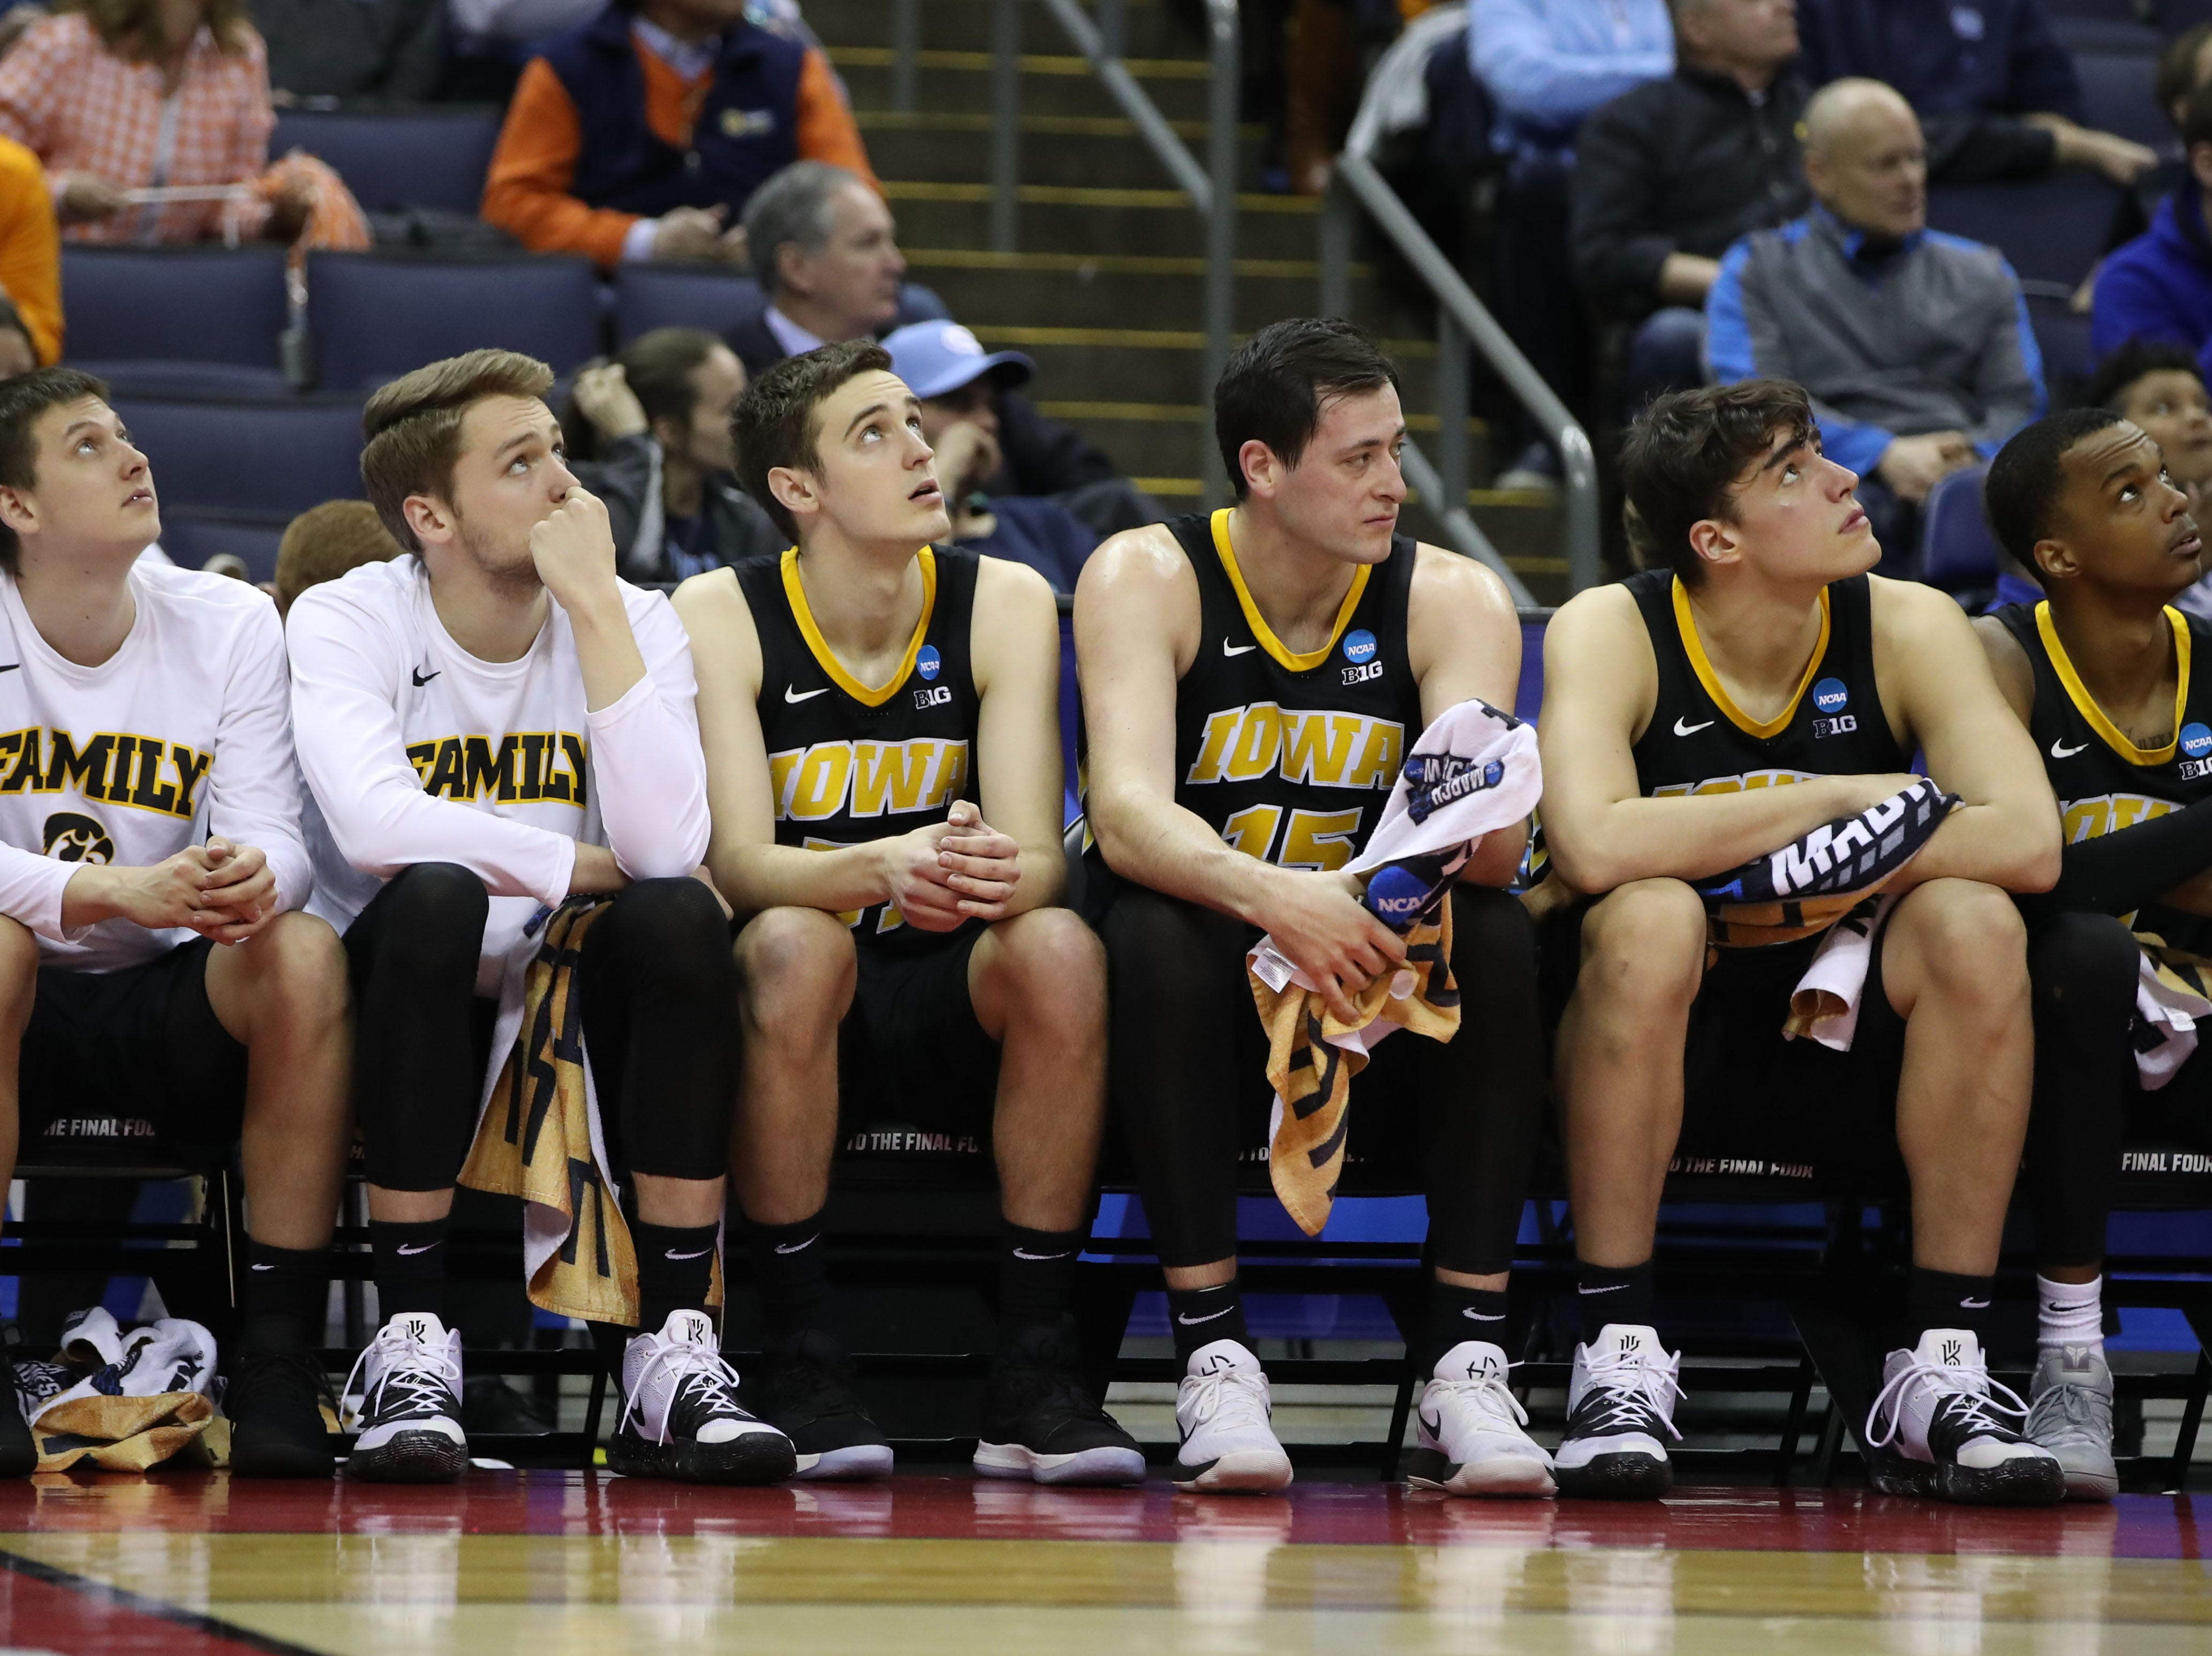 Iowa Hawkeyes bench watch the game against the Tennessee Volunteers in the second round of the 2019 NCAA Tournament at Nationwide Arena.